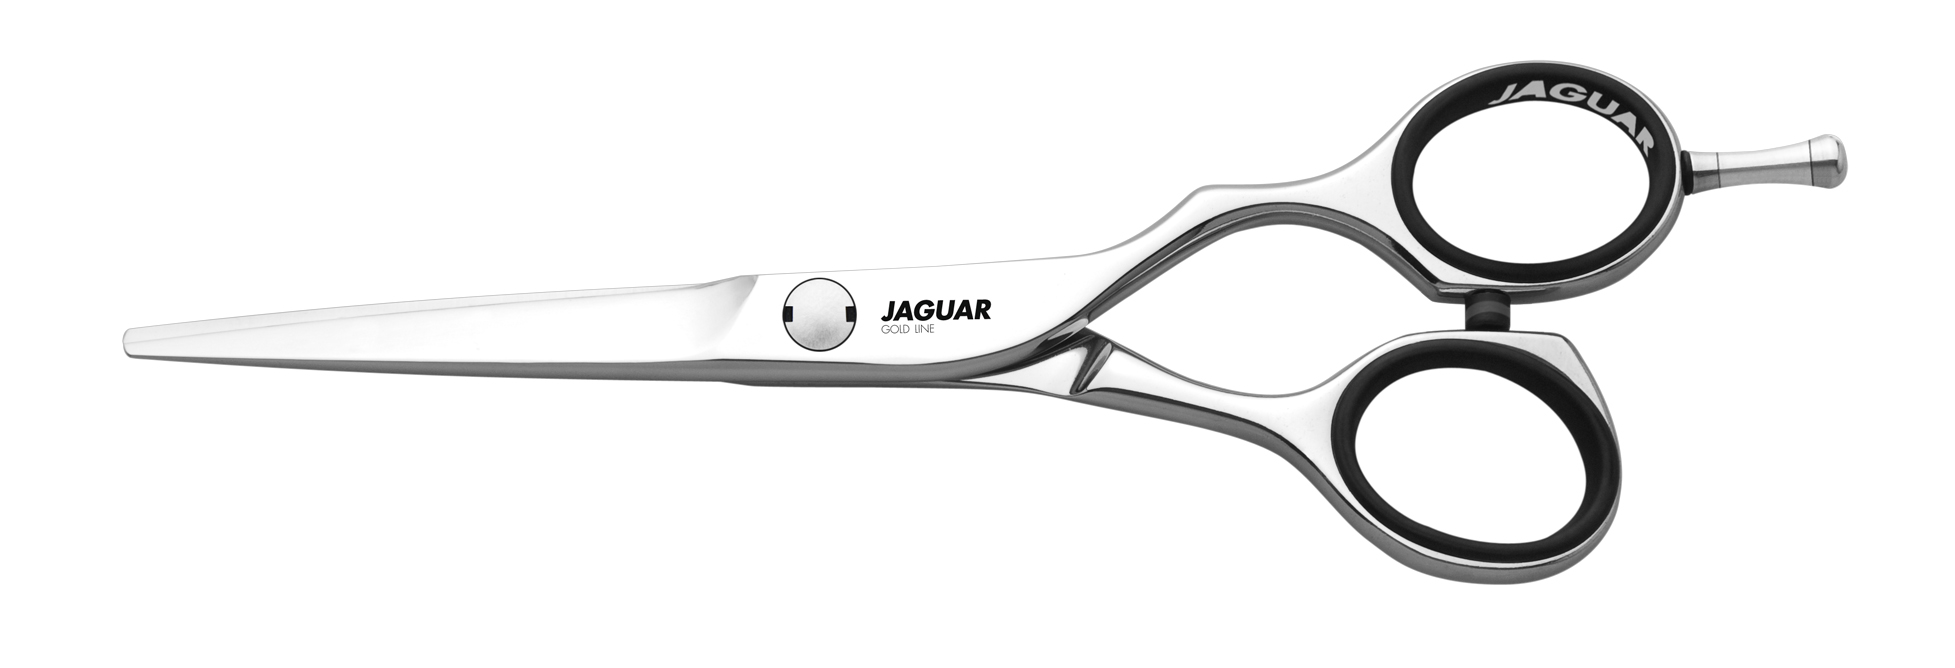 JAGUAR Ножницы Jaguar Diamond E 5'(13cm)GL ножницы 21150 2 diamond e design 5